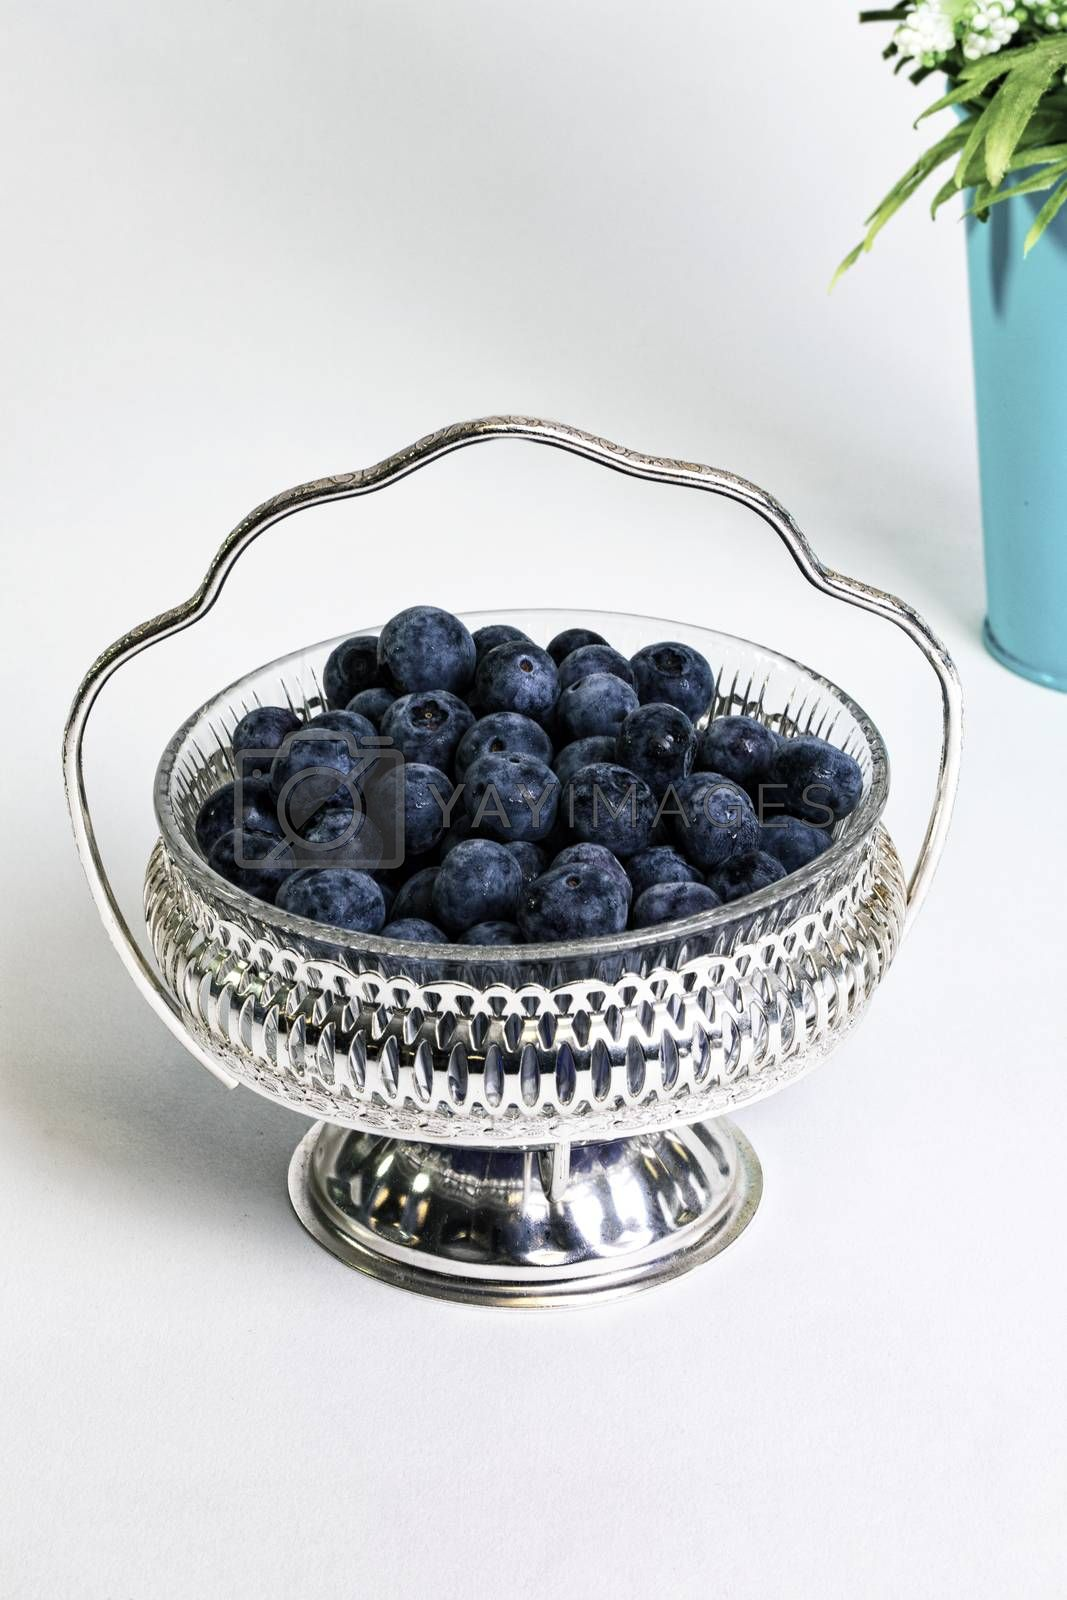 Plump, ripe blueberries in antique silver filigree bowl.